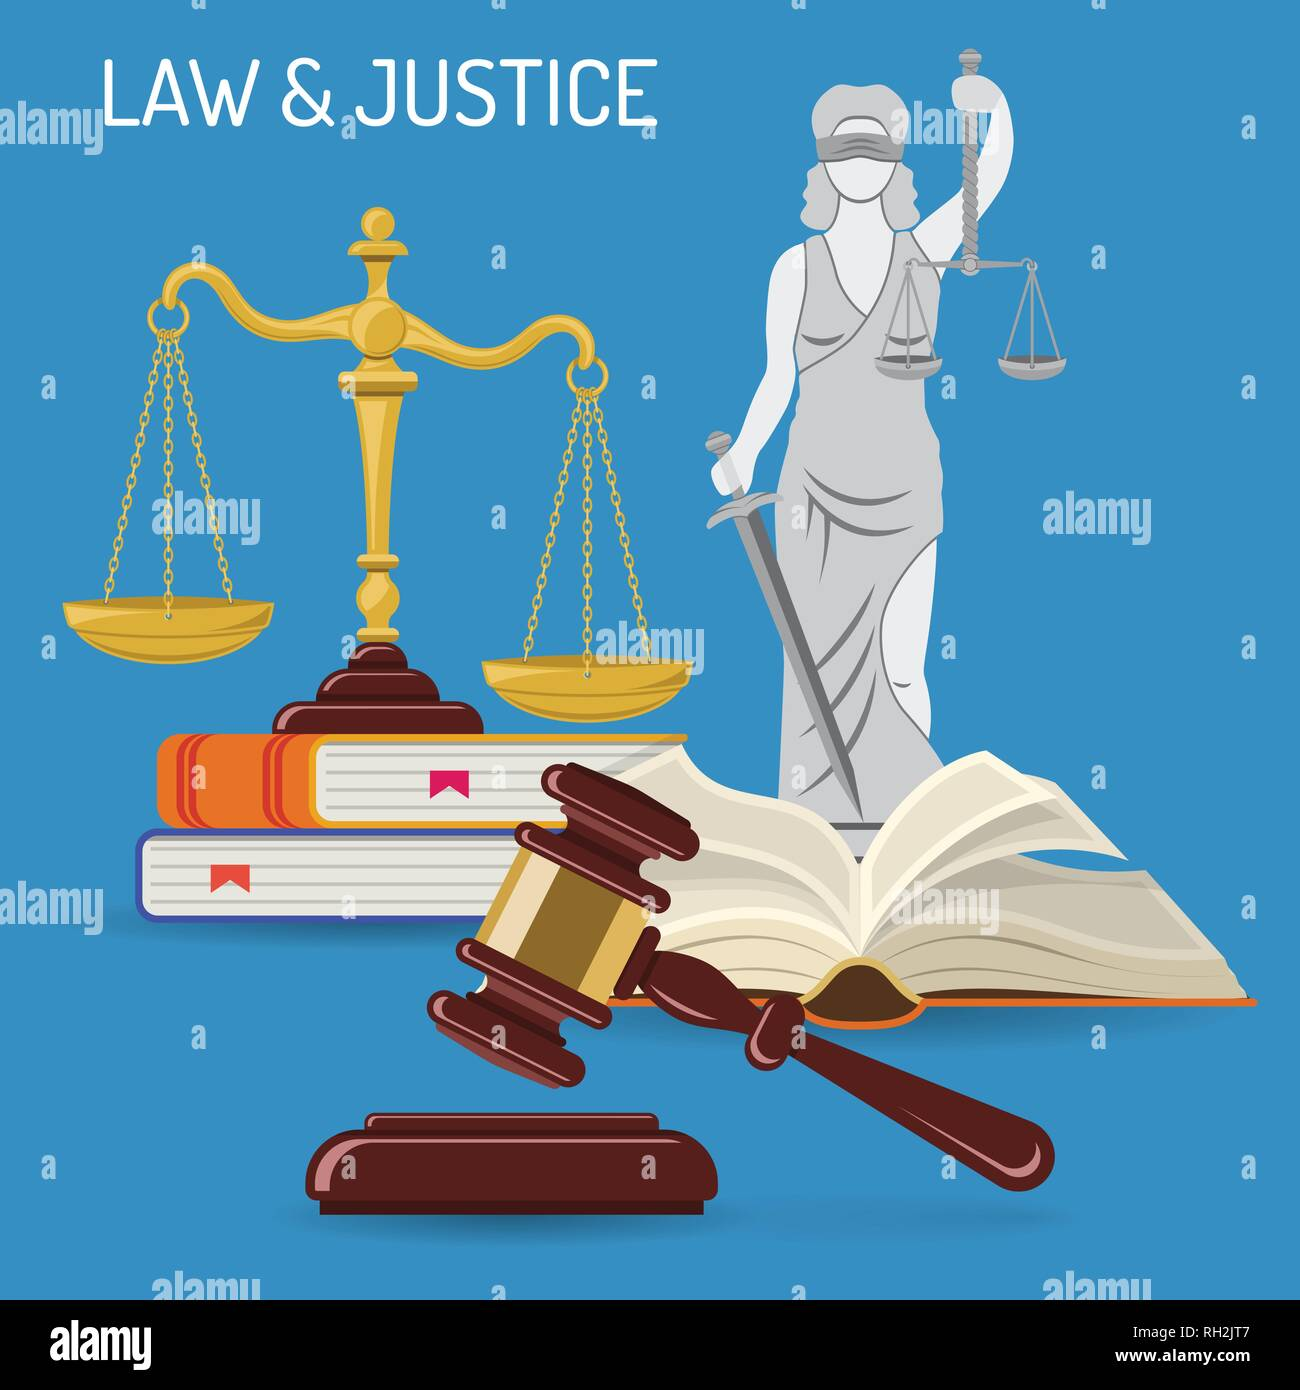 Law and Justice Concept - Stock Vector